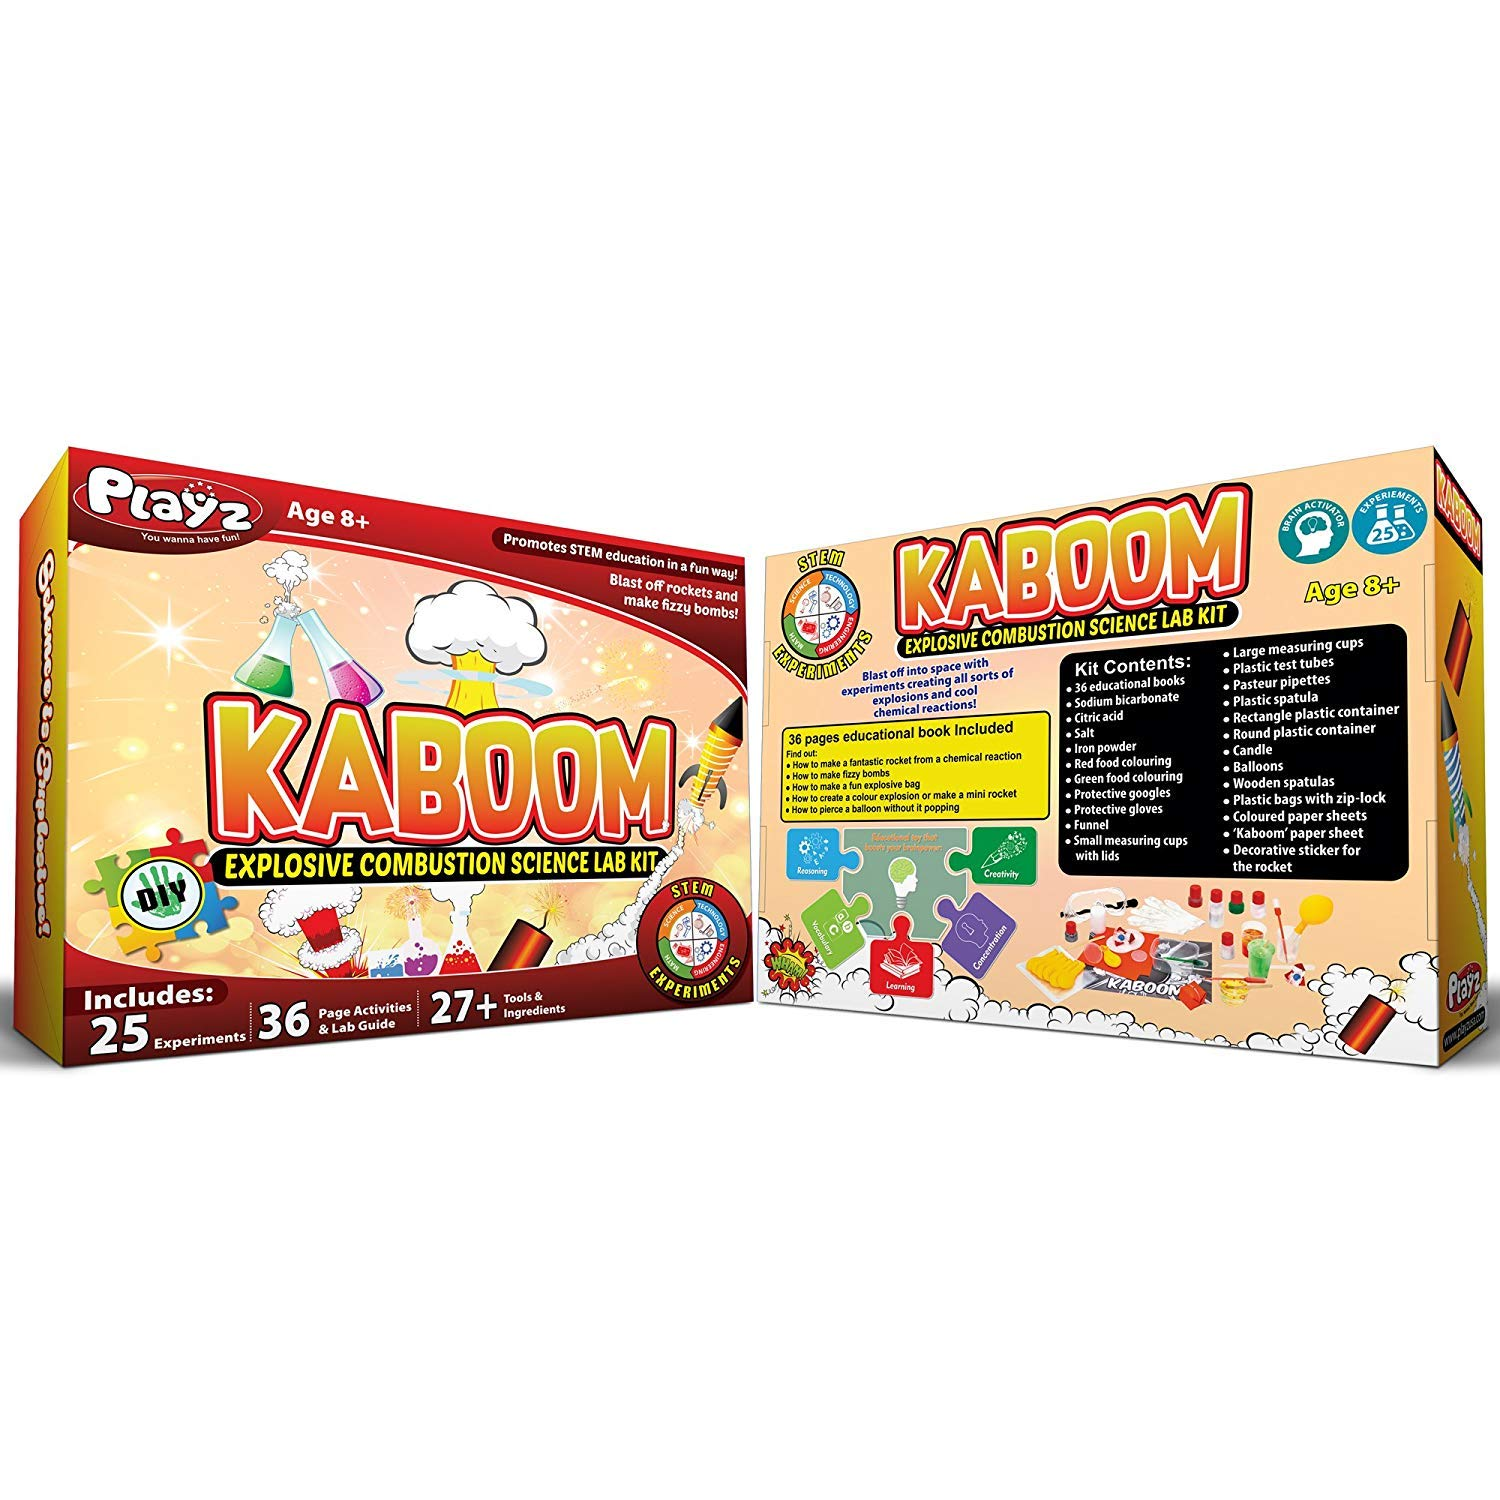 Playz Kaboom! Explosive Combustion Science Lab Kit - 25+ STEM Experiments - DIY Make Your Own Rockets, Helium Balloons, Fizzy Bombs, Color Explosions and More with Fun Chemical Reactions! by Playz (Image #9)